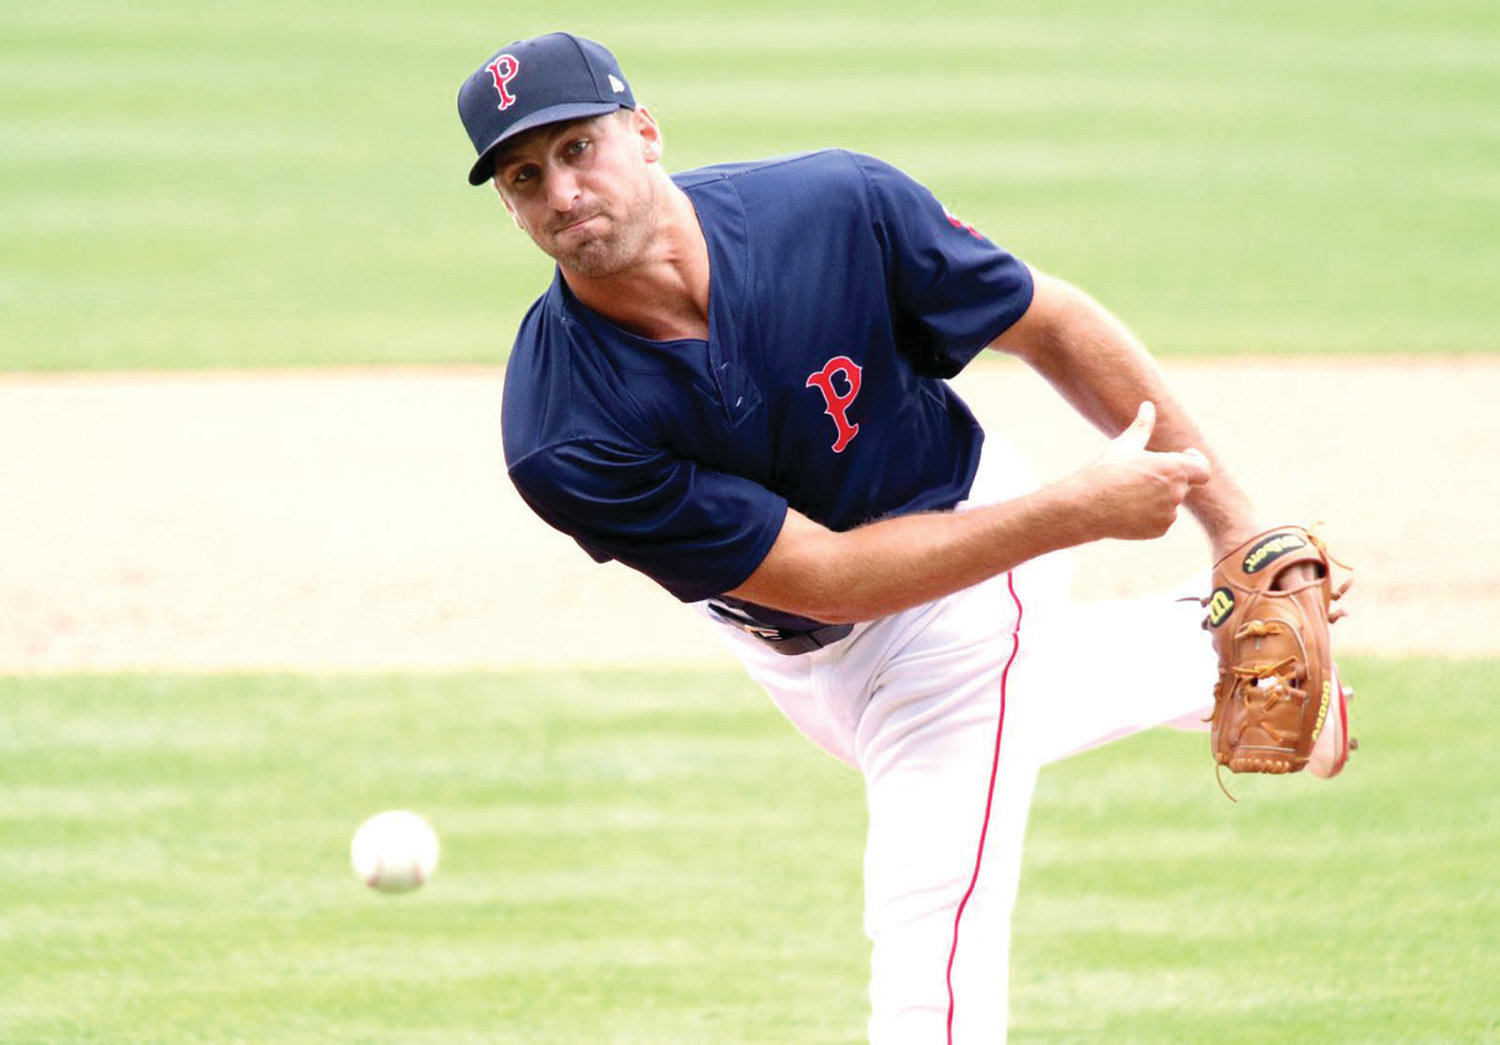 Barrington native Trevor Kelley fires a strike toward the plate during a Pawtucket Red Sox game earlier this season.